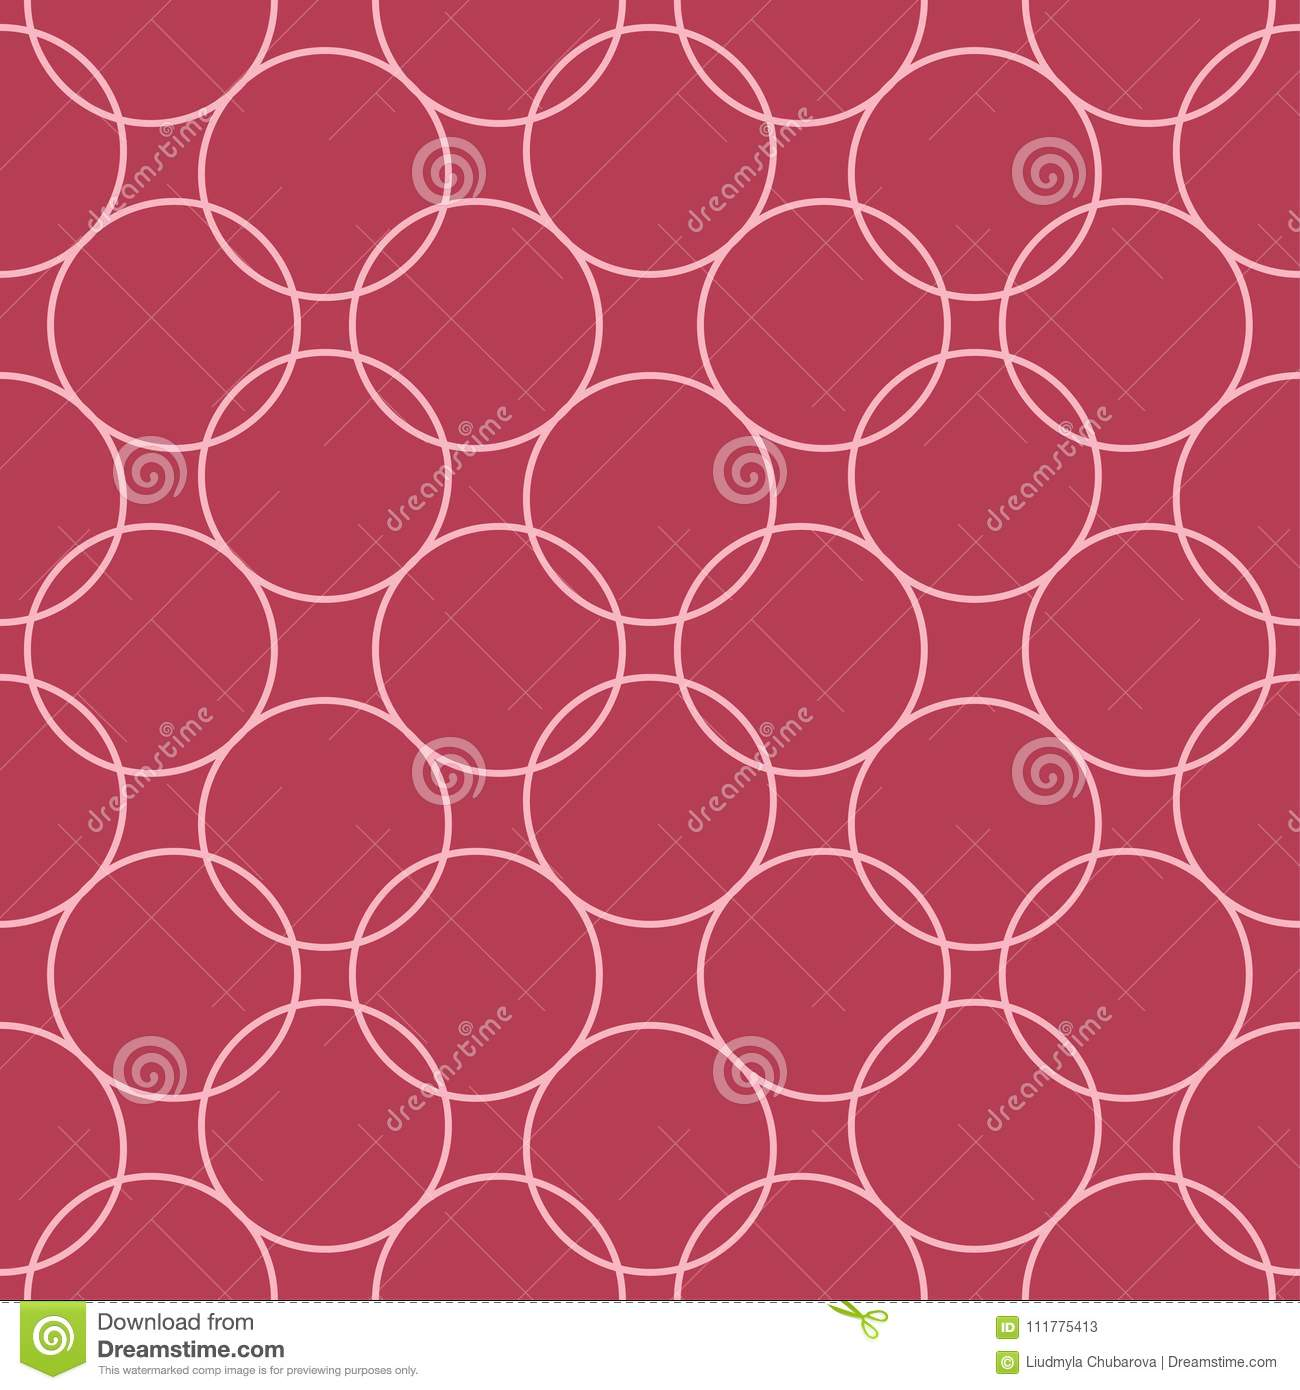 Red and pale pink geometric seamless pattern